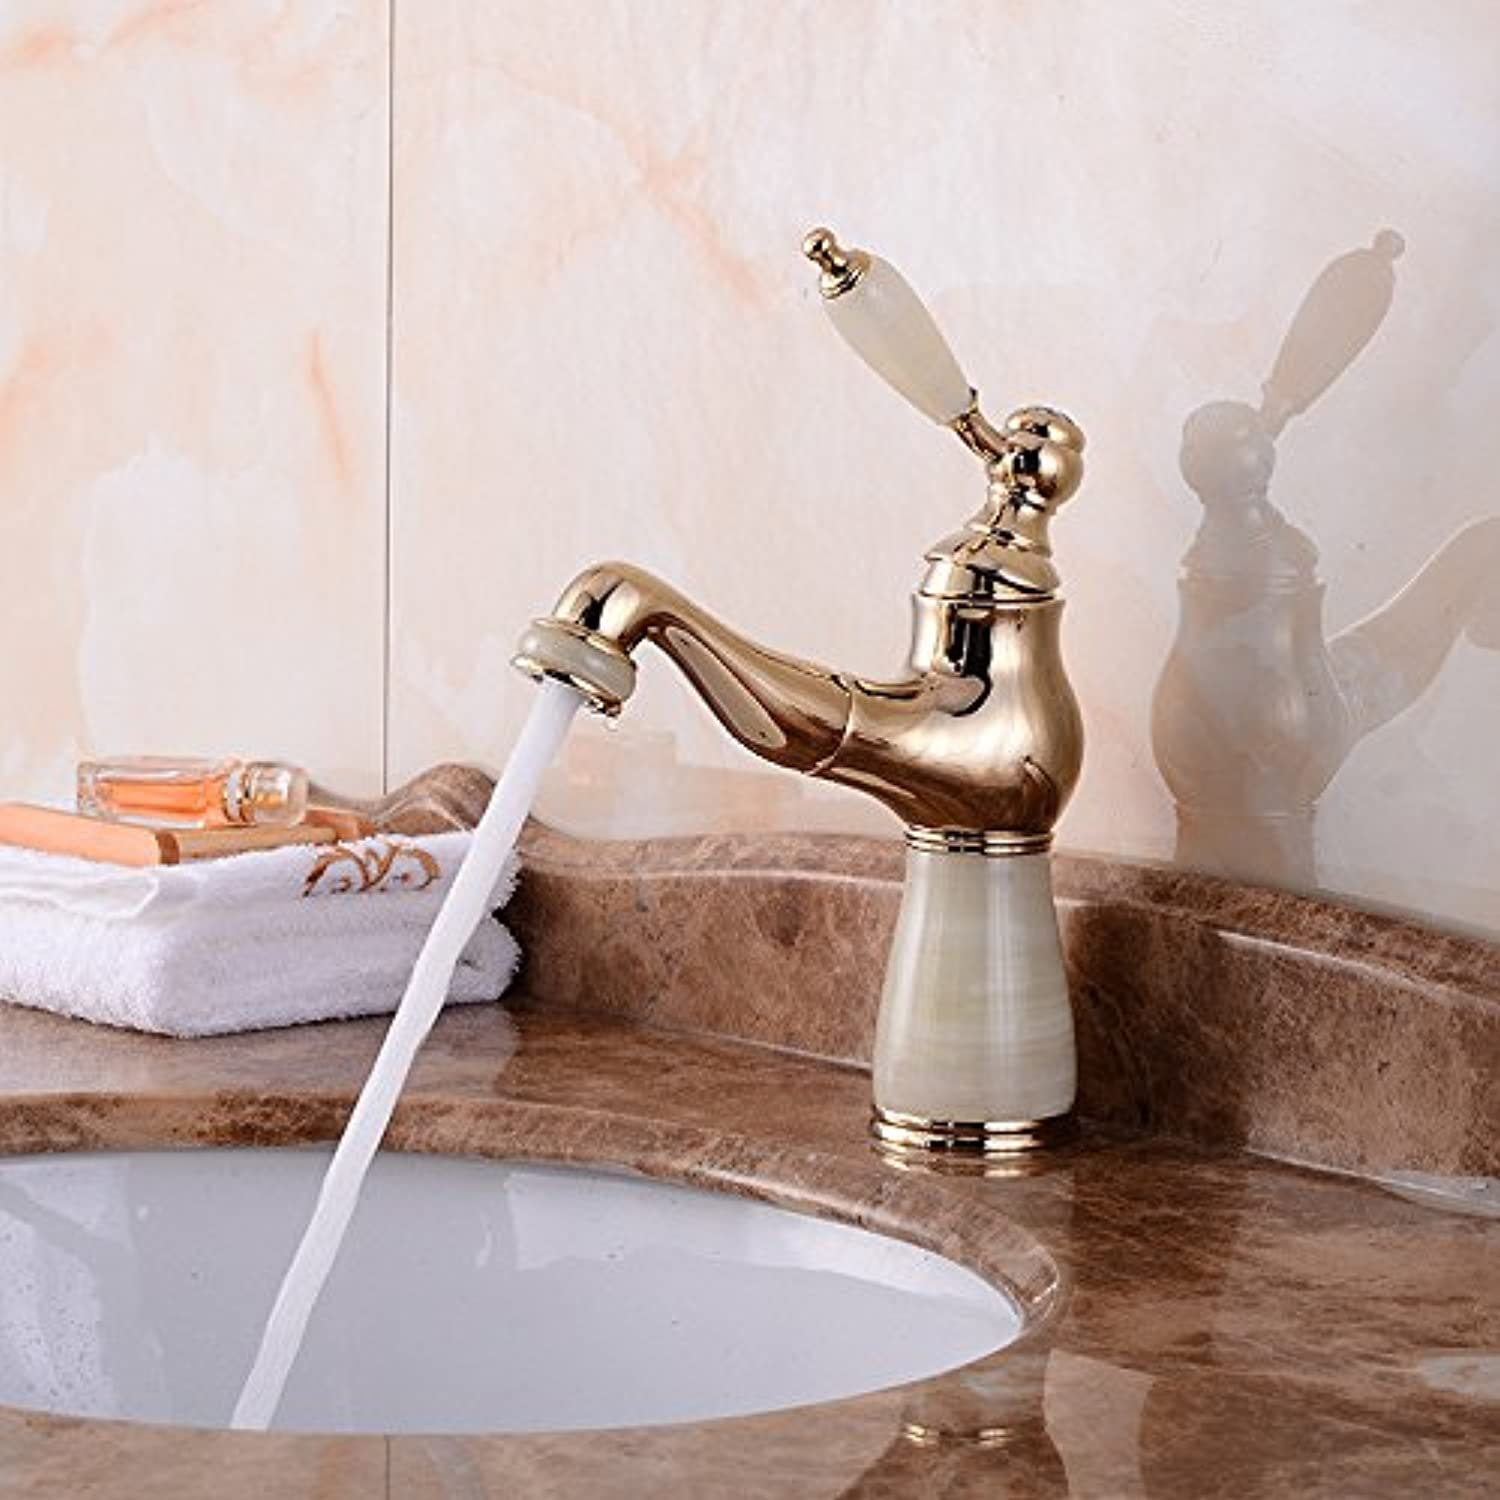 ZXYSink faucet Cu continental basin faucet telescopic pull type ryuto hot and cold water mixing tap